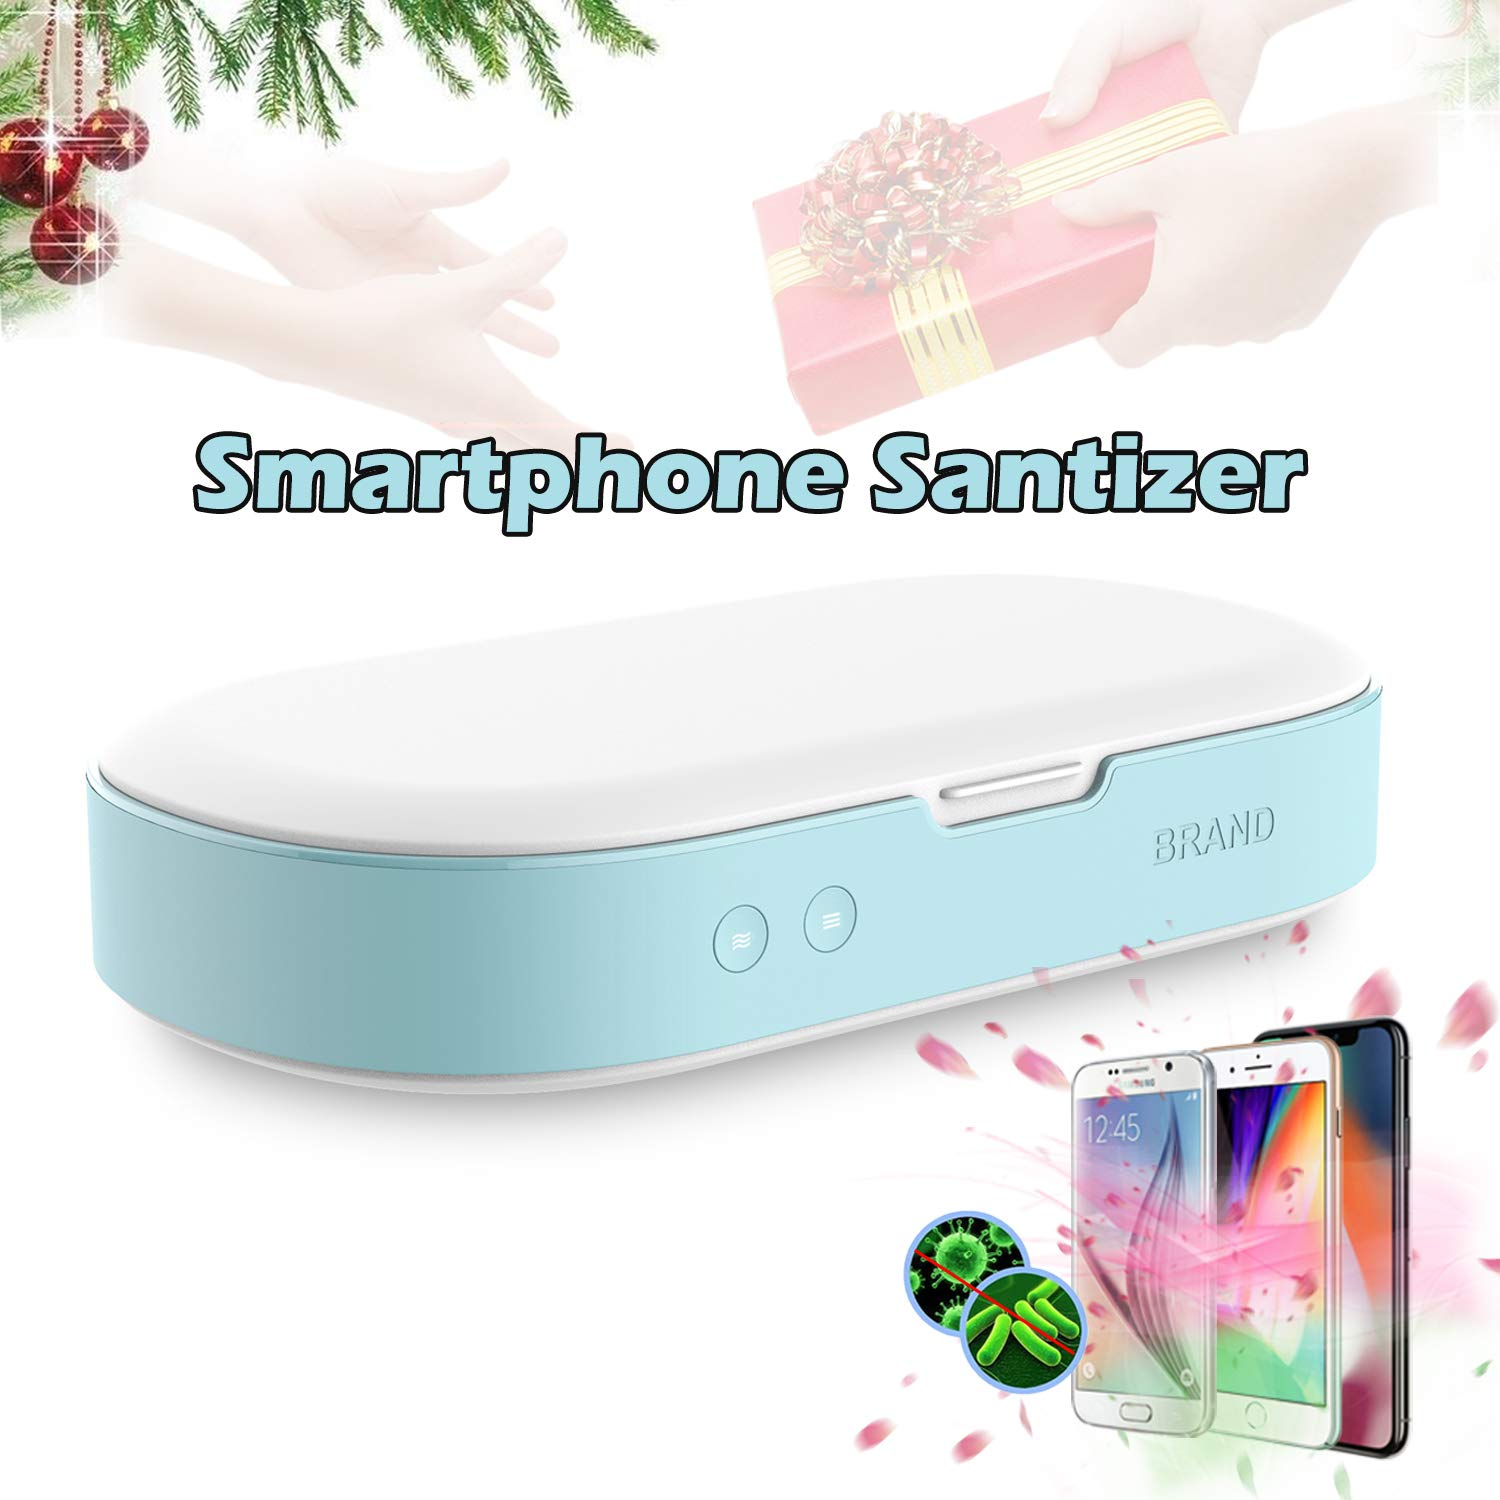 Smartphone Sanitizer Sterilizer Phone Cleaners,UV Light Cell Phone Sanitizer Sterilizer Cleaners for All Phones Jewelry Watch Sterilizer Cleaner by Eshake